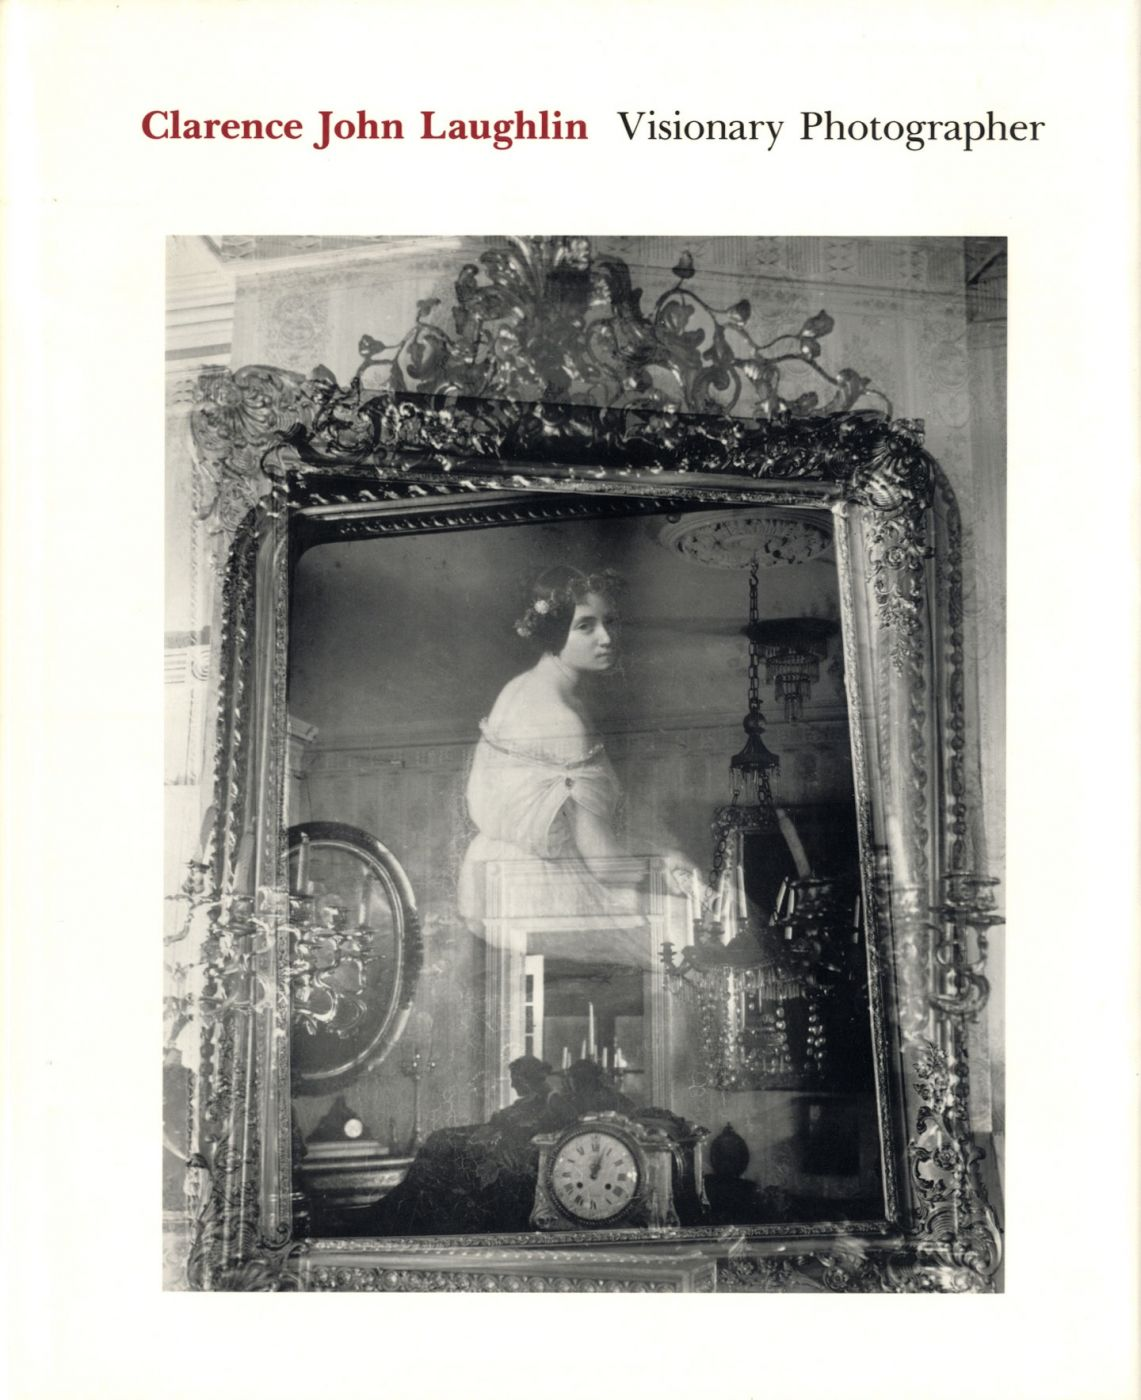 Haunter of Ruins: The Photography of Clarence John Laughlin [SIGNED ASSOCIATION COPY]